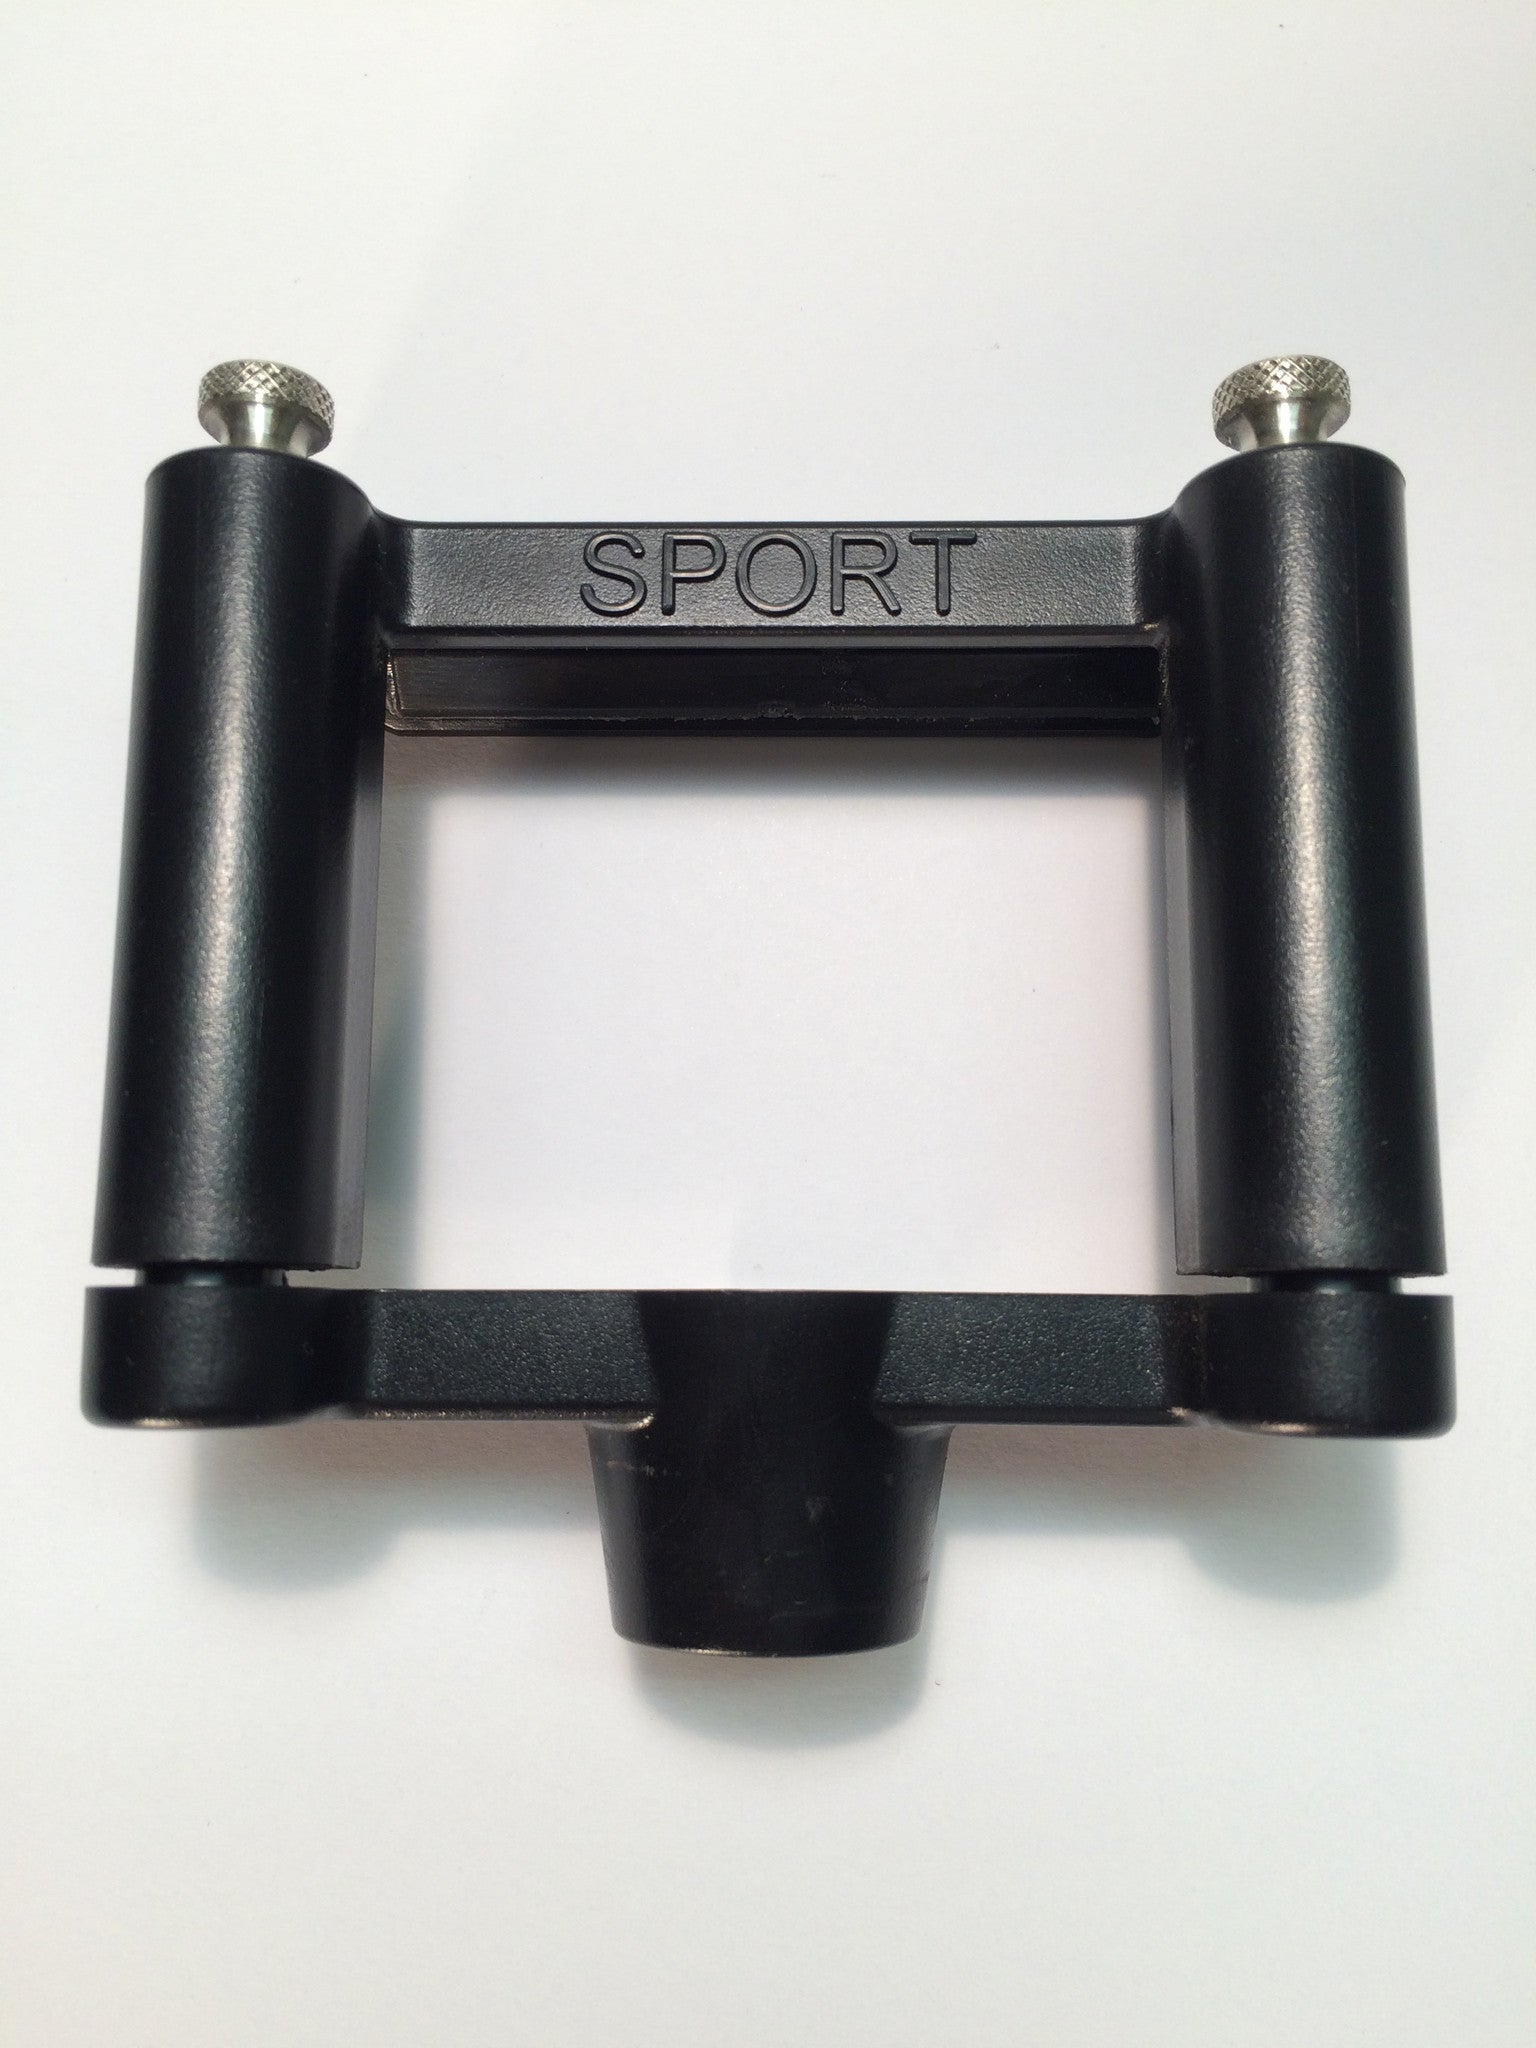 READYACTION Sport - Universal Smartphone Holder - iPhone Holder / Android Holder